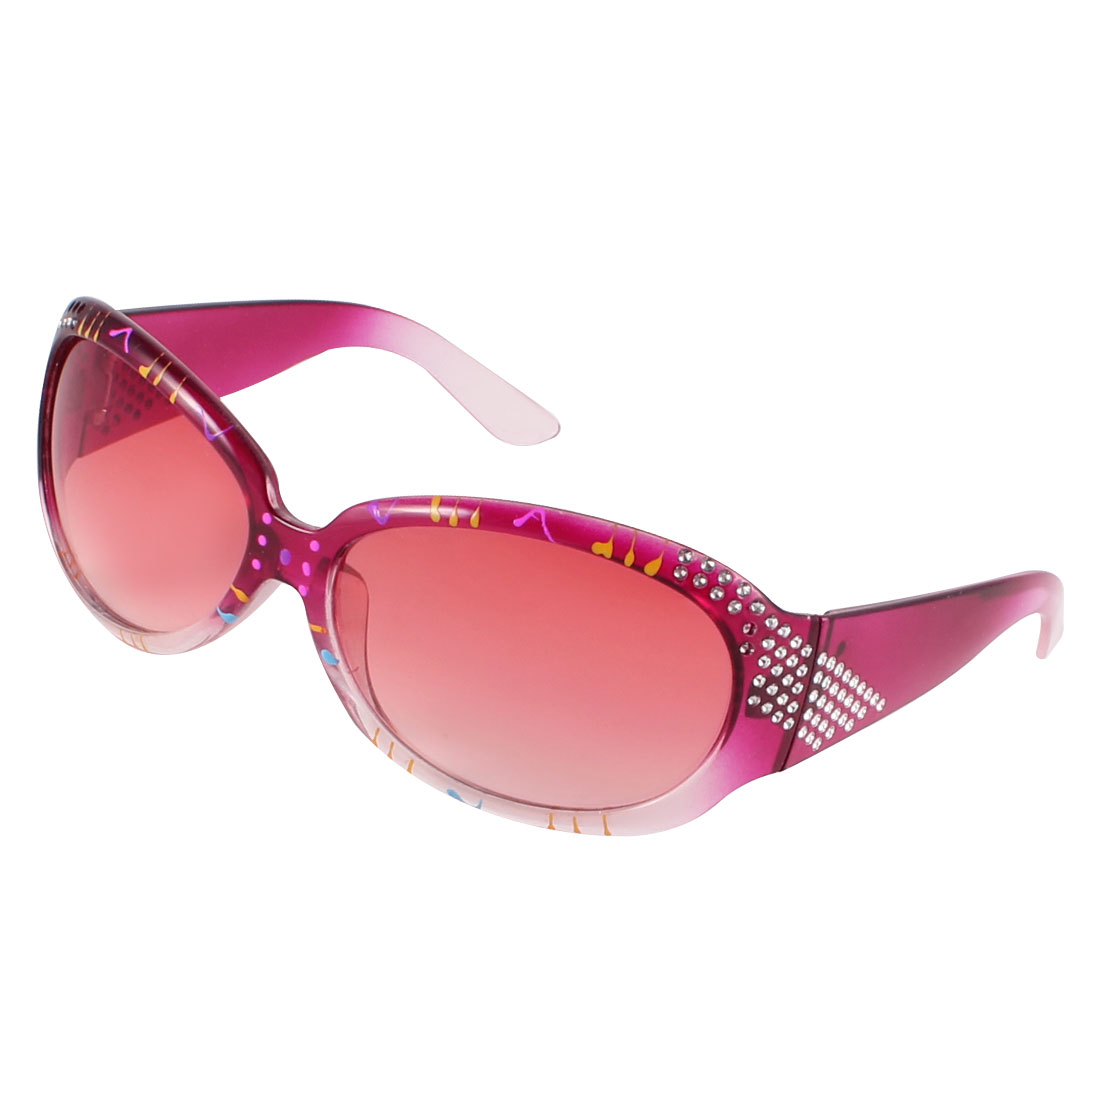 Lady Outdoor Fuchsia Arm Full Frame Tinted Lens Rhinestone InlaidSunglasses